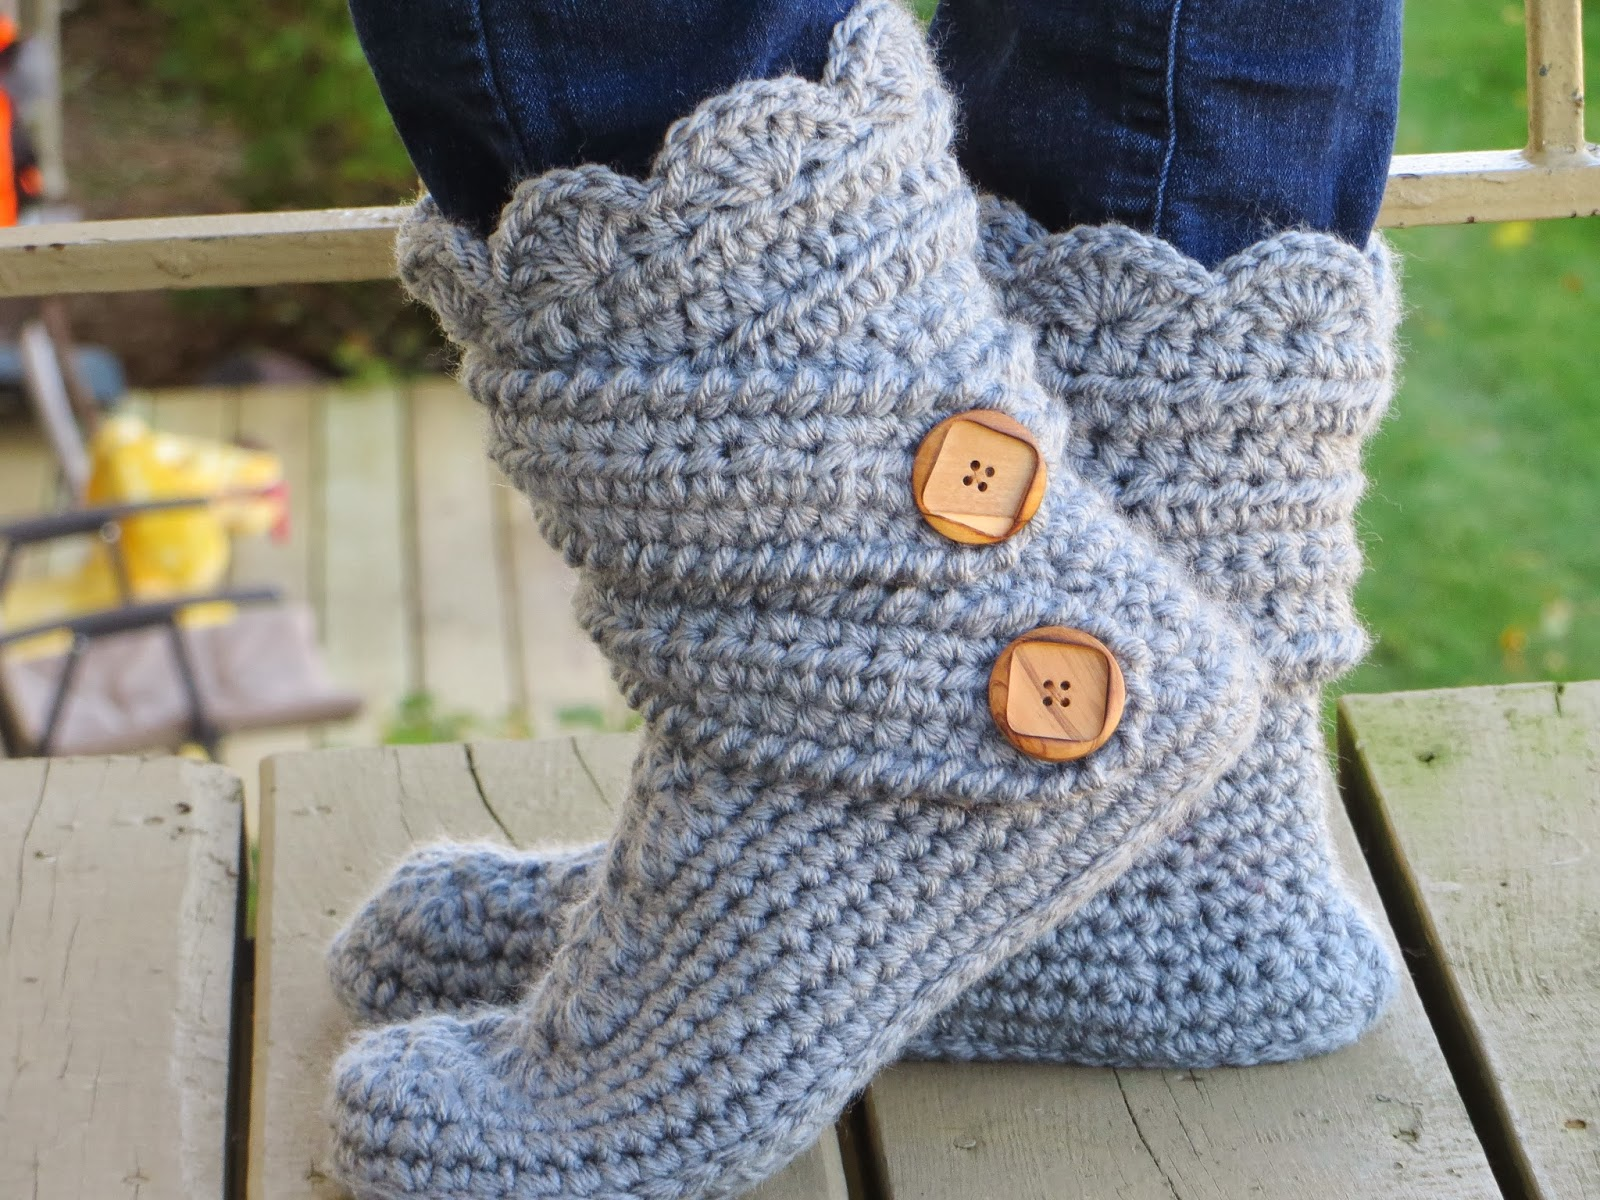 French Crochet Patterns : Crochet Pattern, Classic Snow Boots, US sizes 5-12, Now in French ...